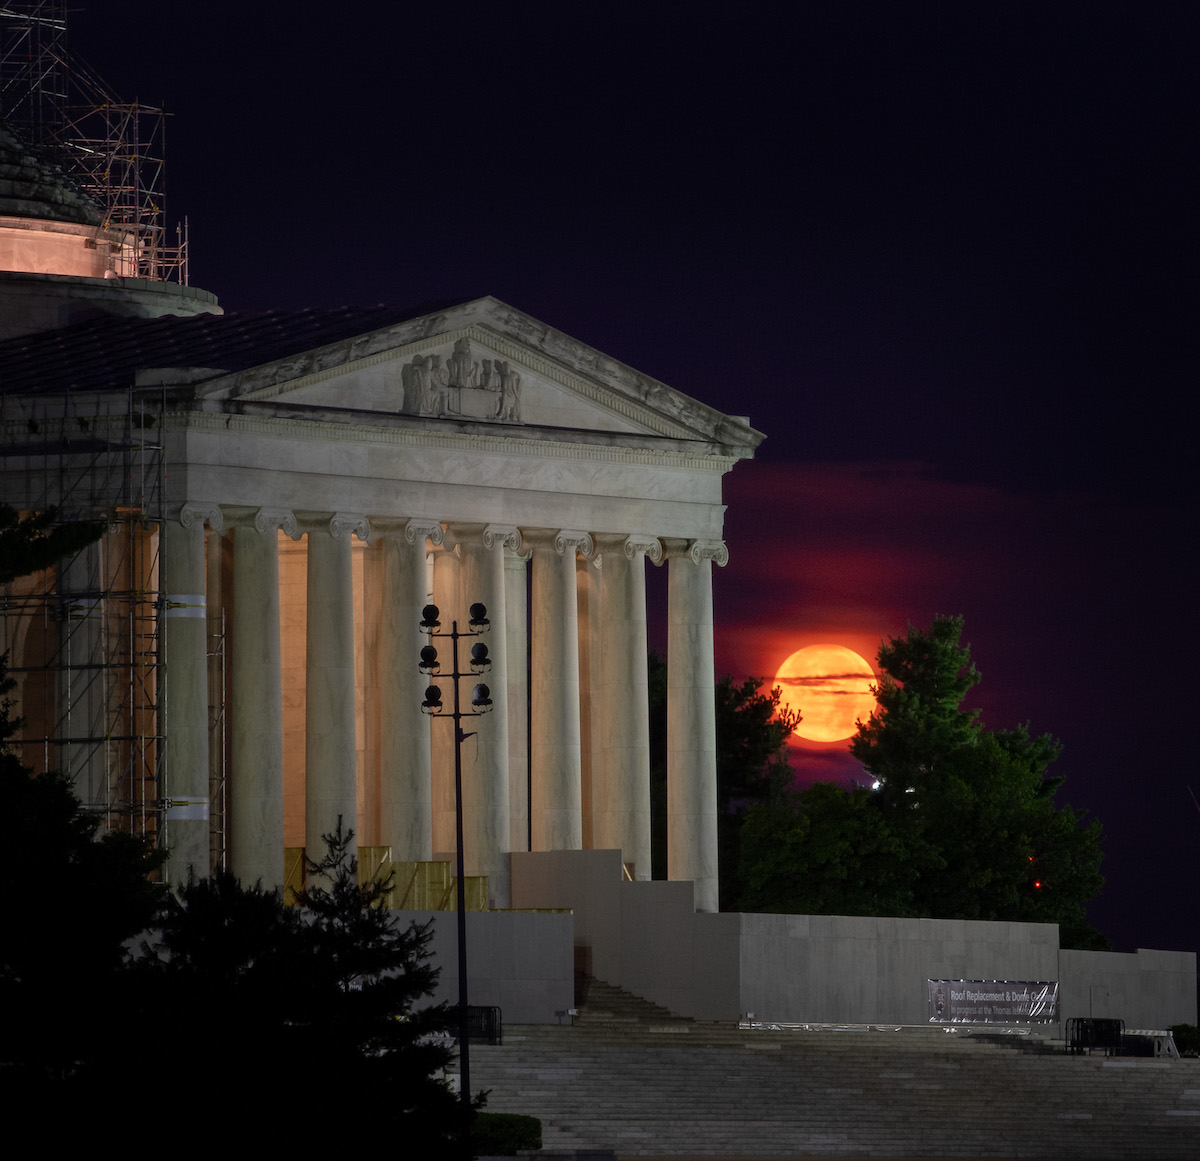 orange moon seen next to columned building